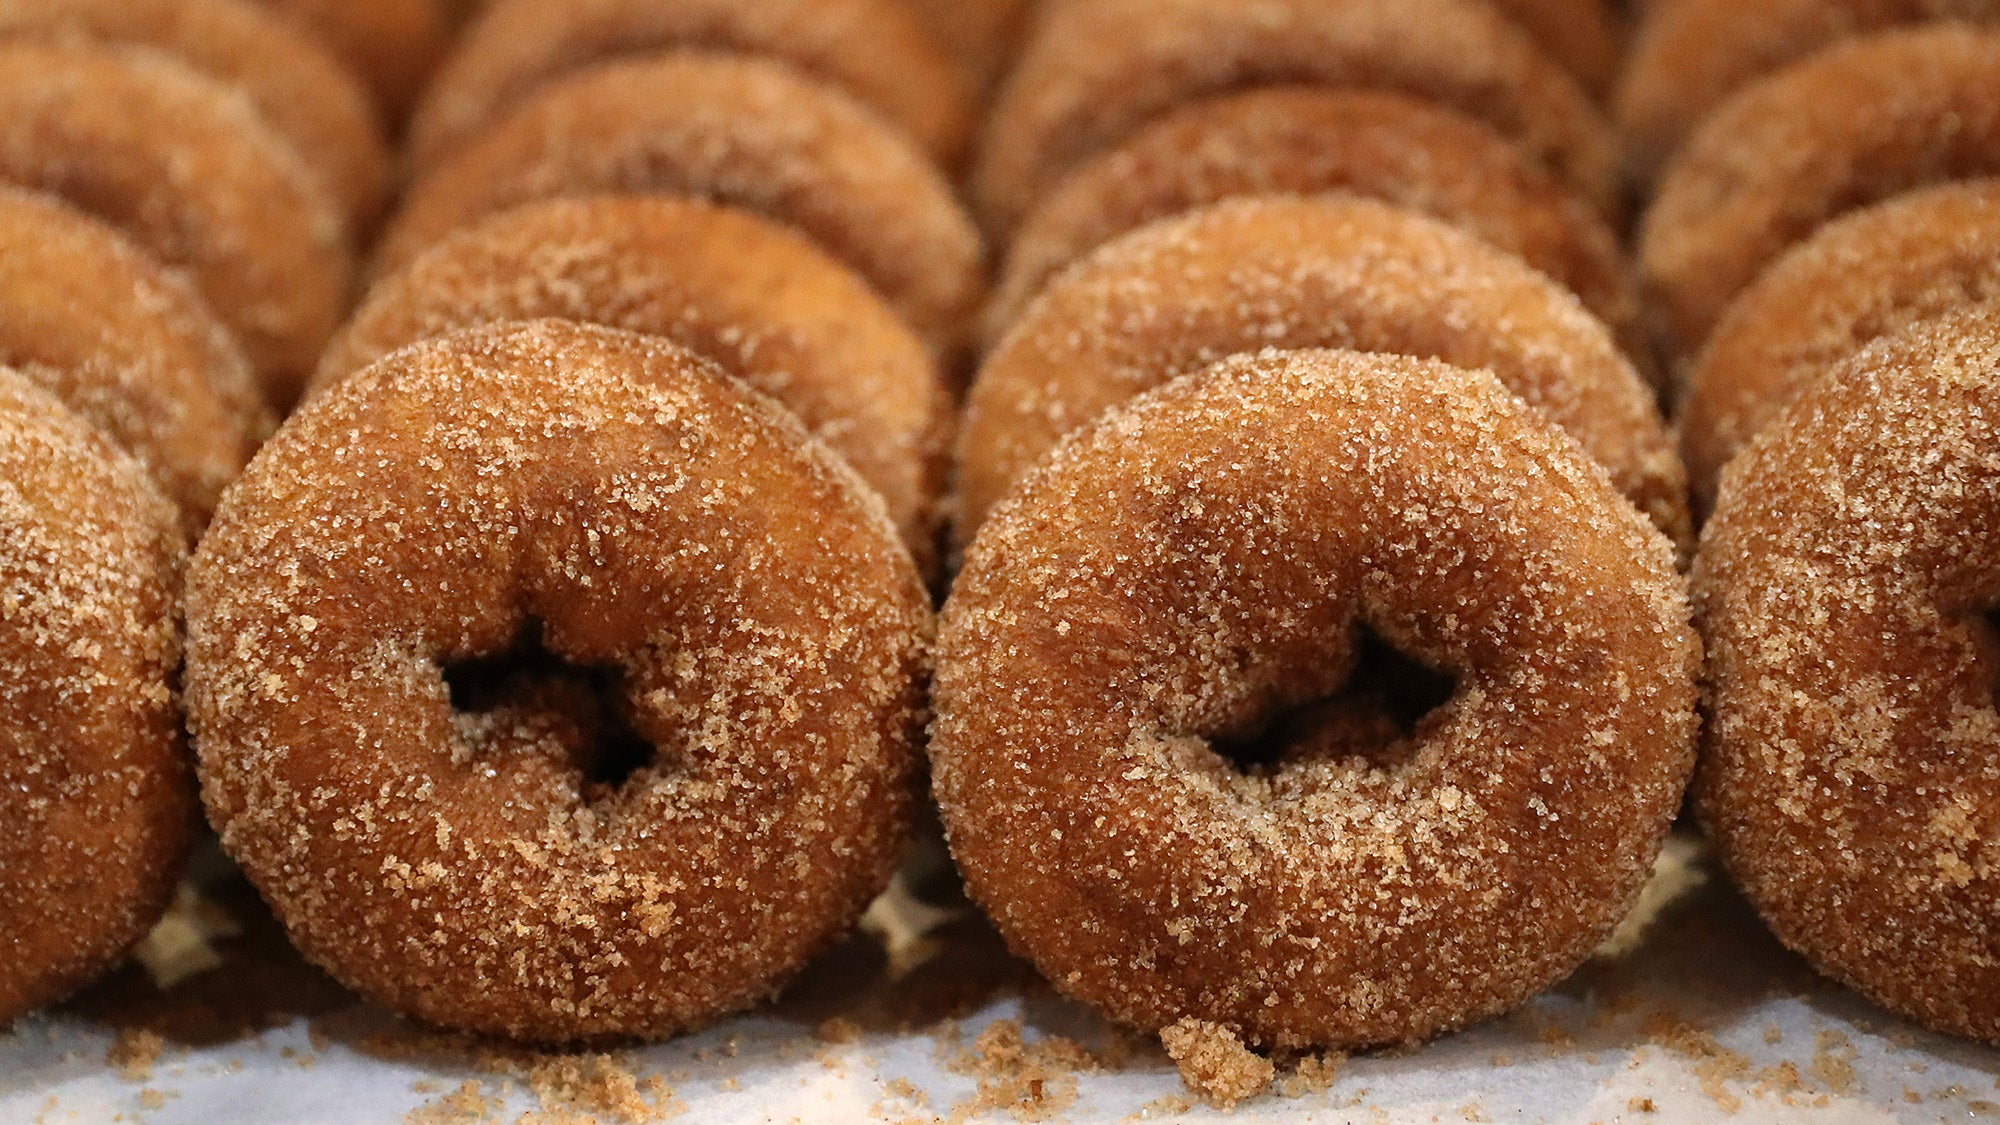 Apple cider donuts at Wilson Farm in Lexington